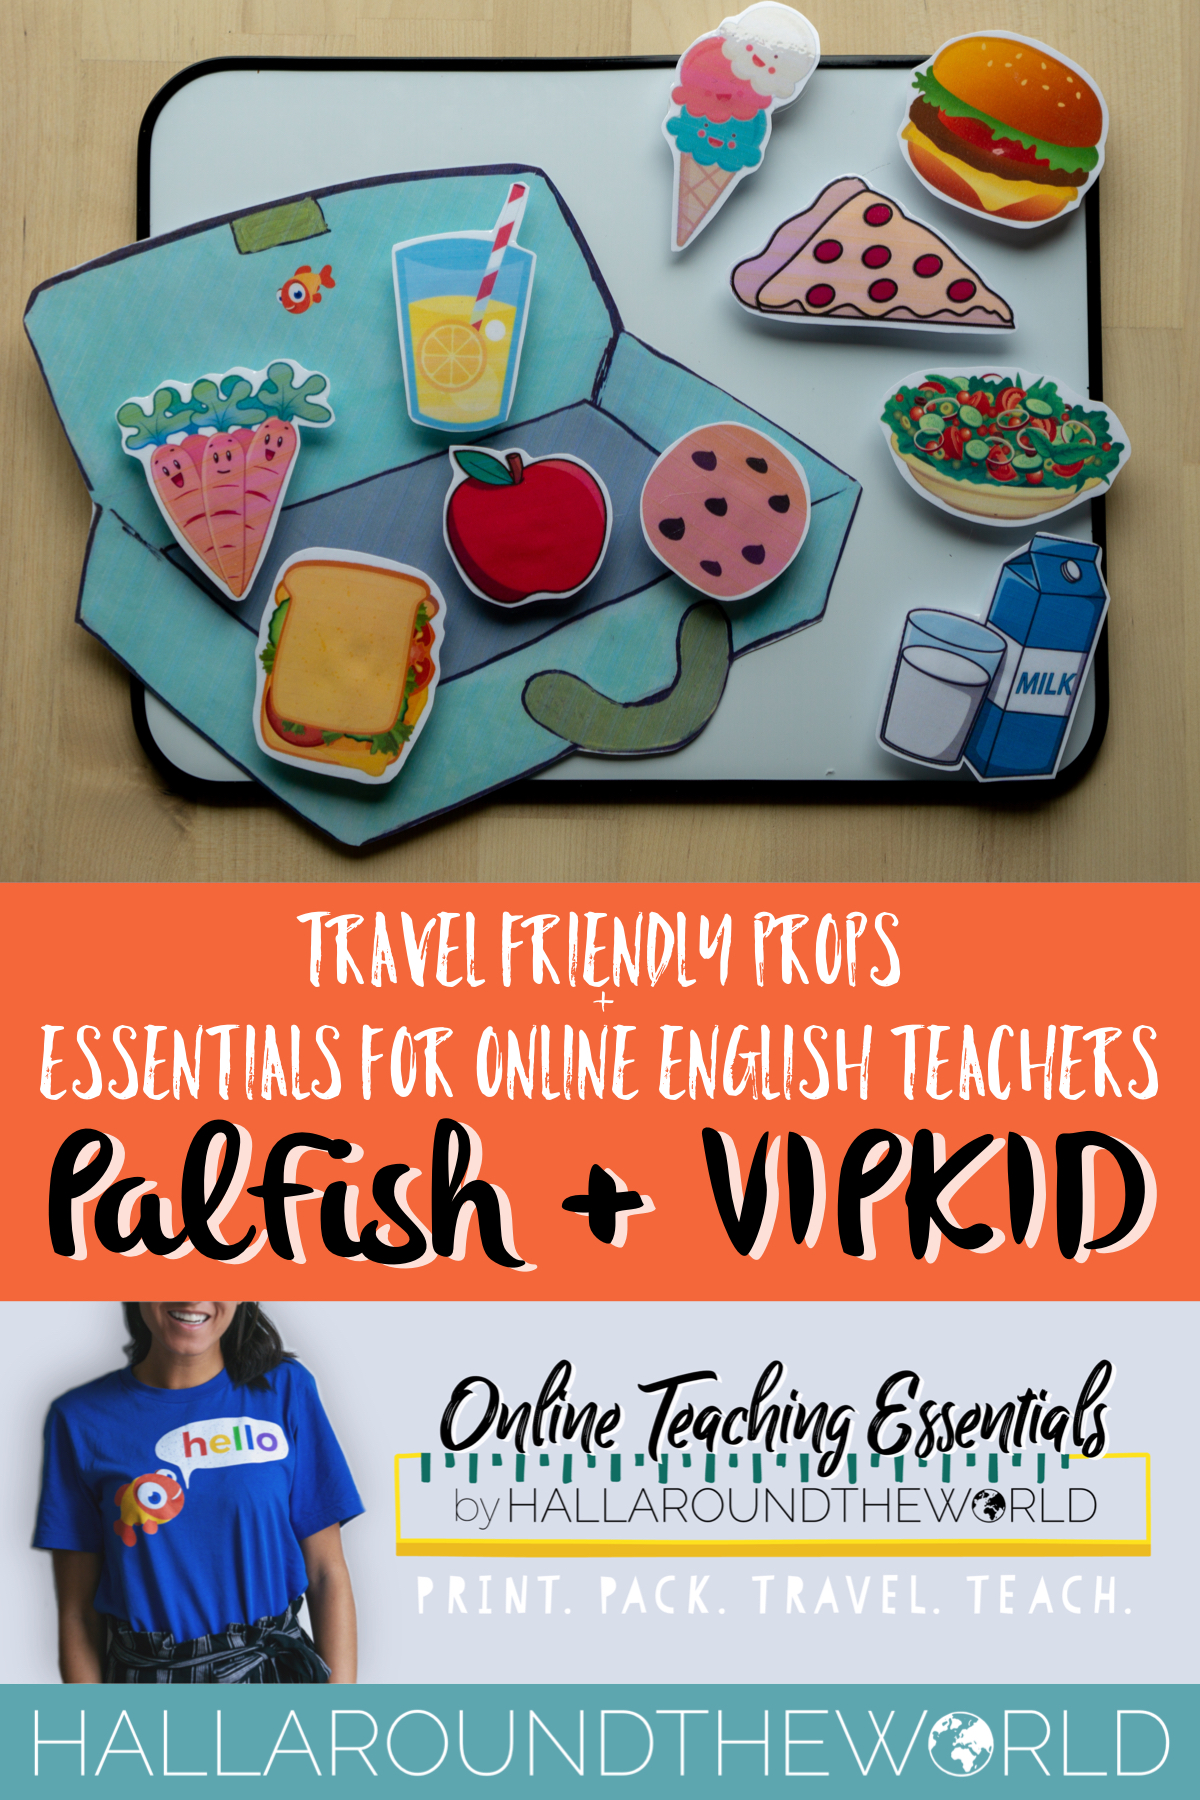 Travel Friendly PalFish Props + Other Essentials for Online English Teachers | HallAroundtheWorld